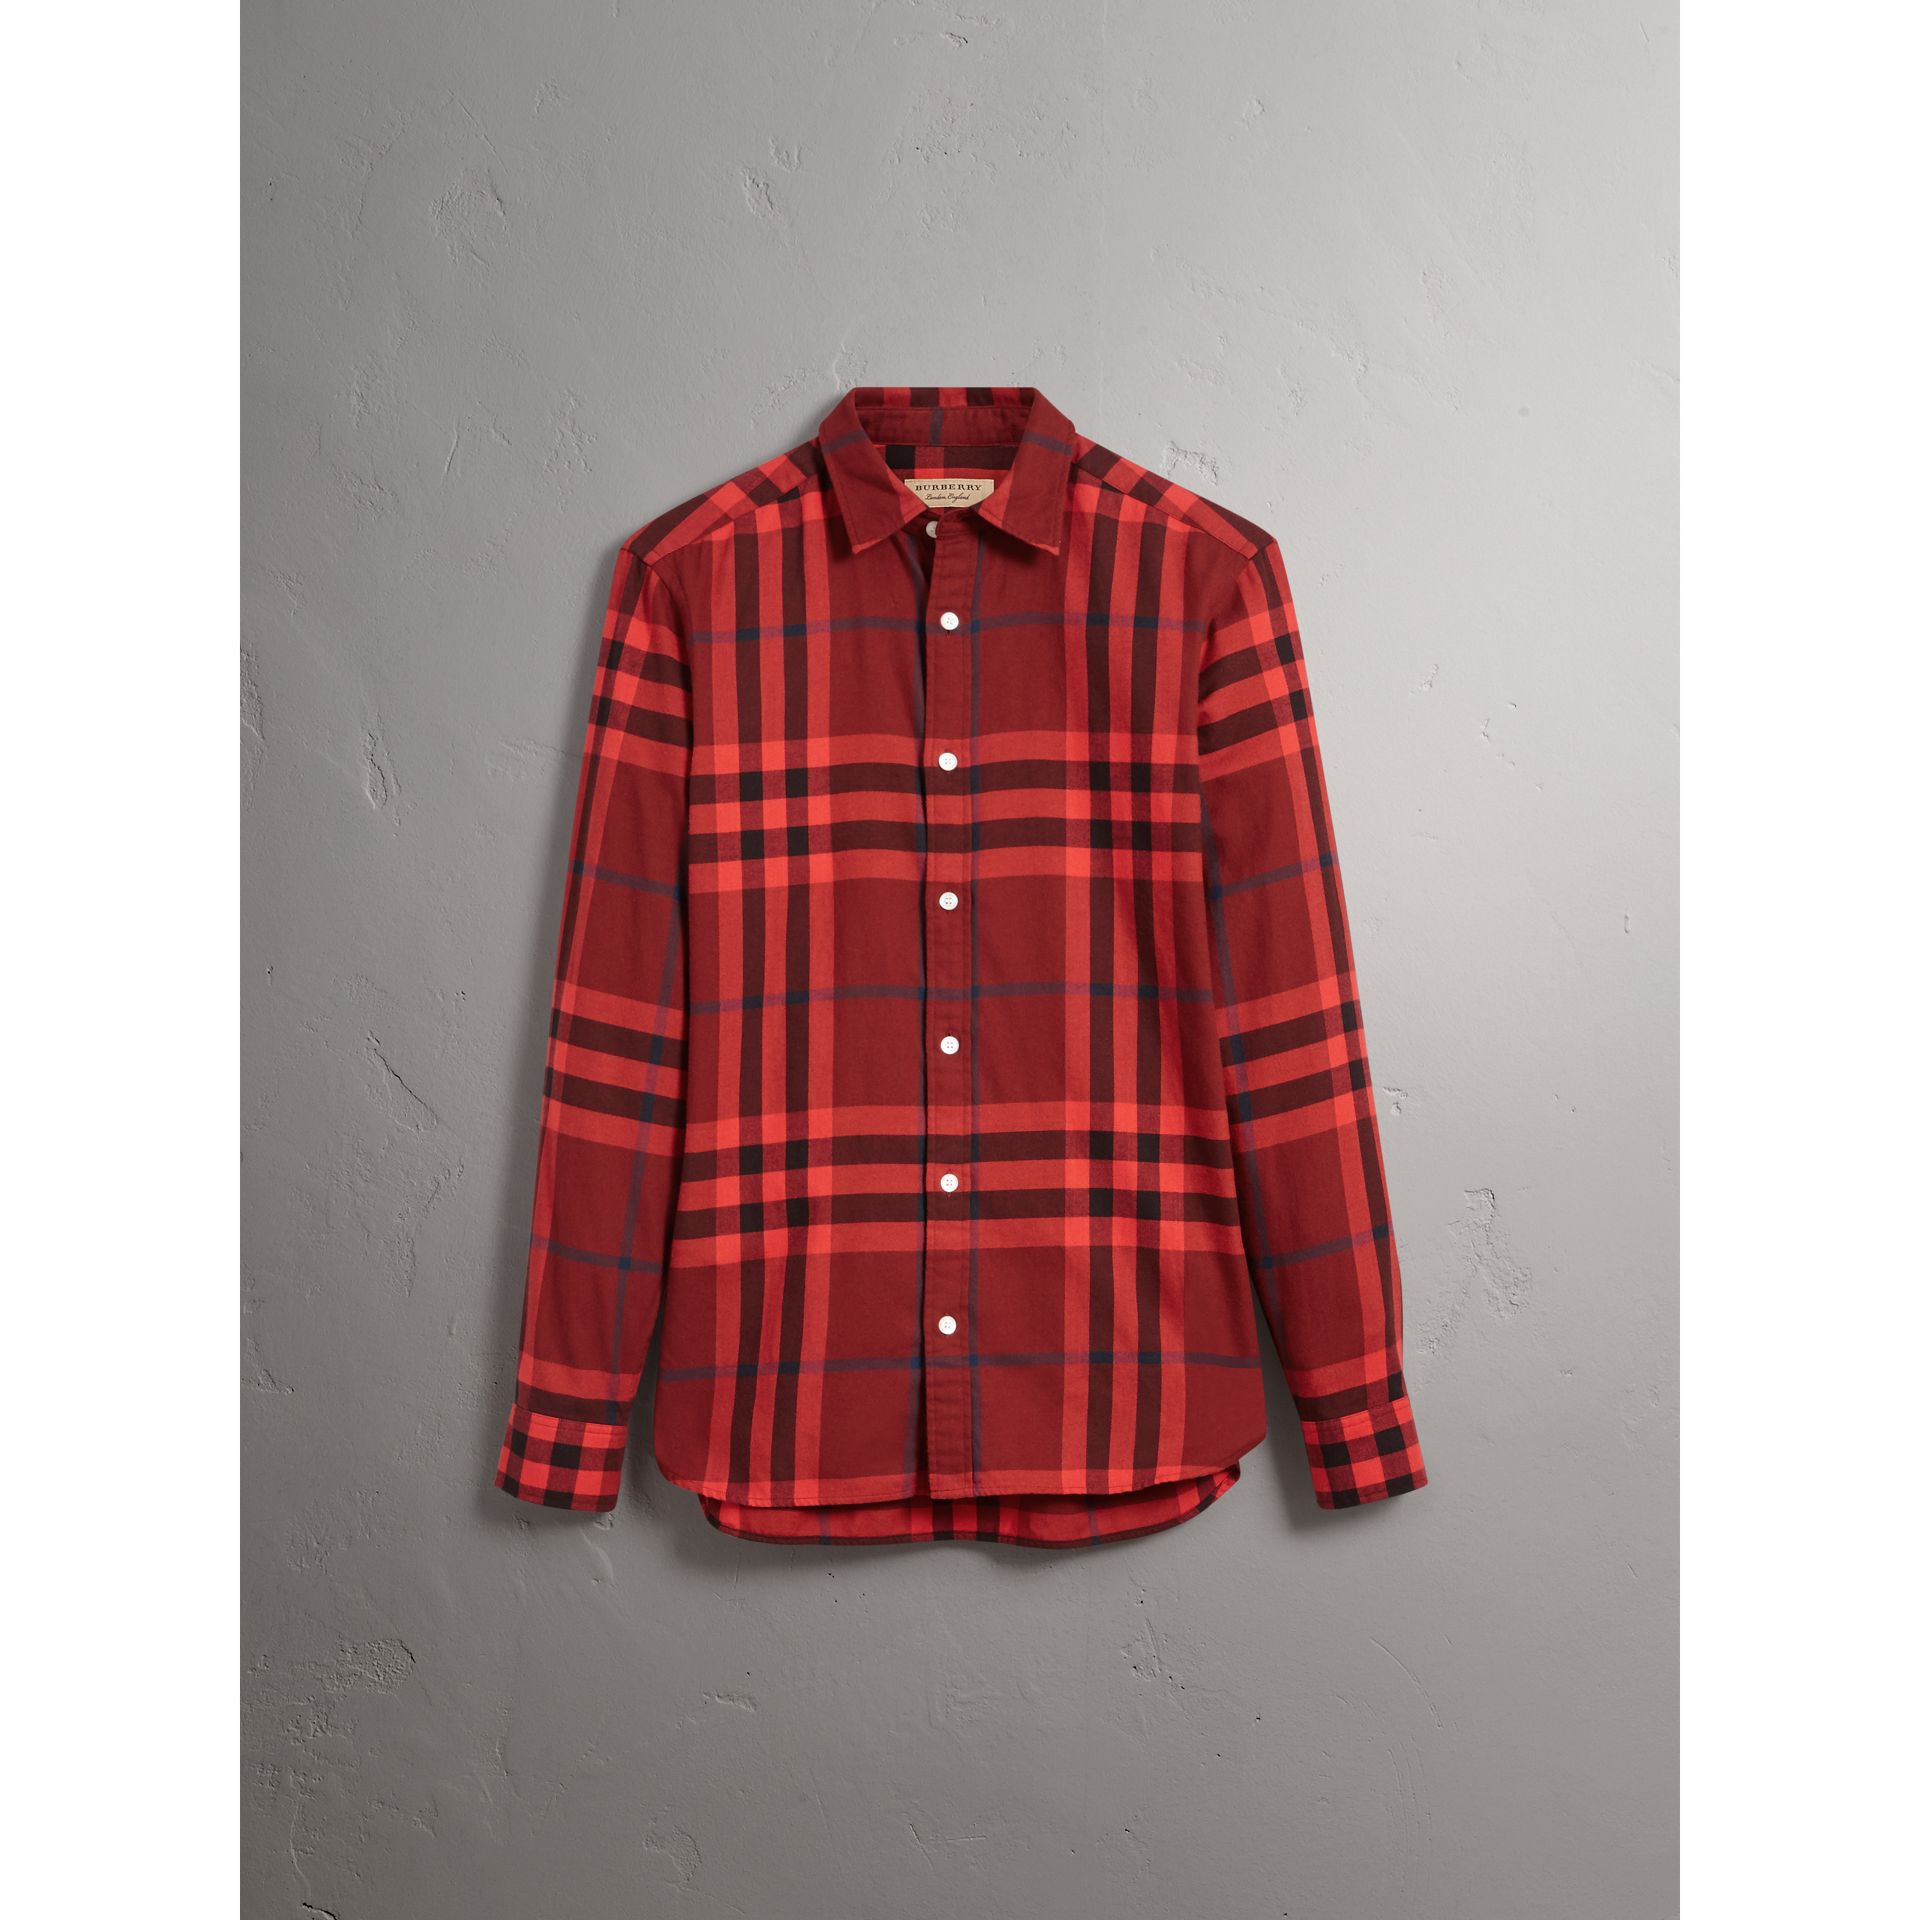 Burberry Mahogany Red Check Cotton Flannel Shirt